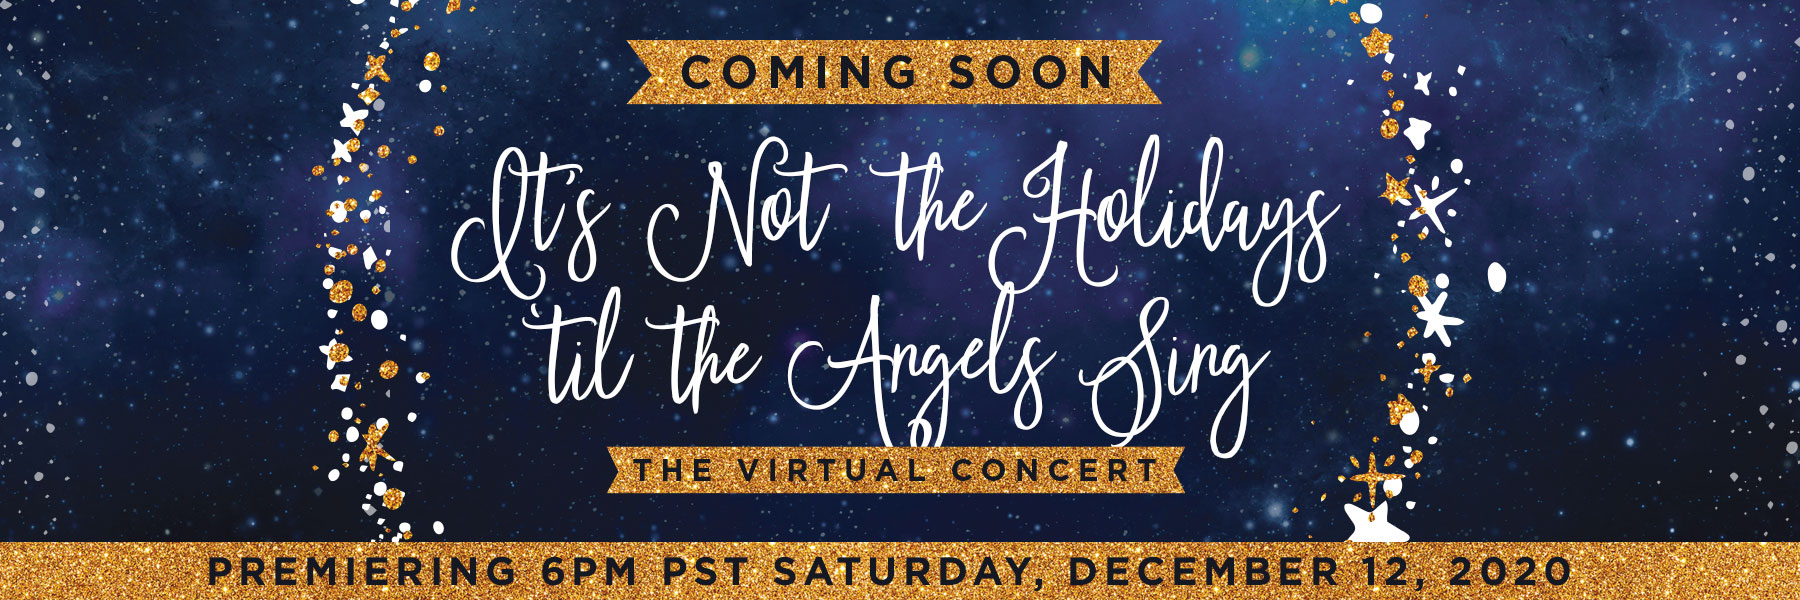 It's Not the Holidays 'til the Angels Sing